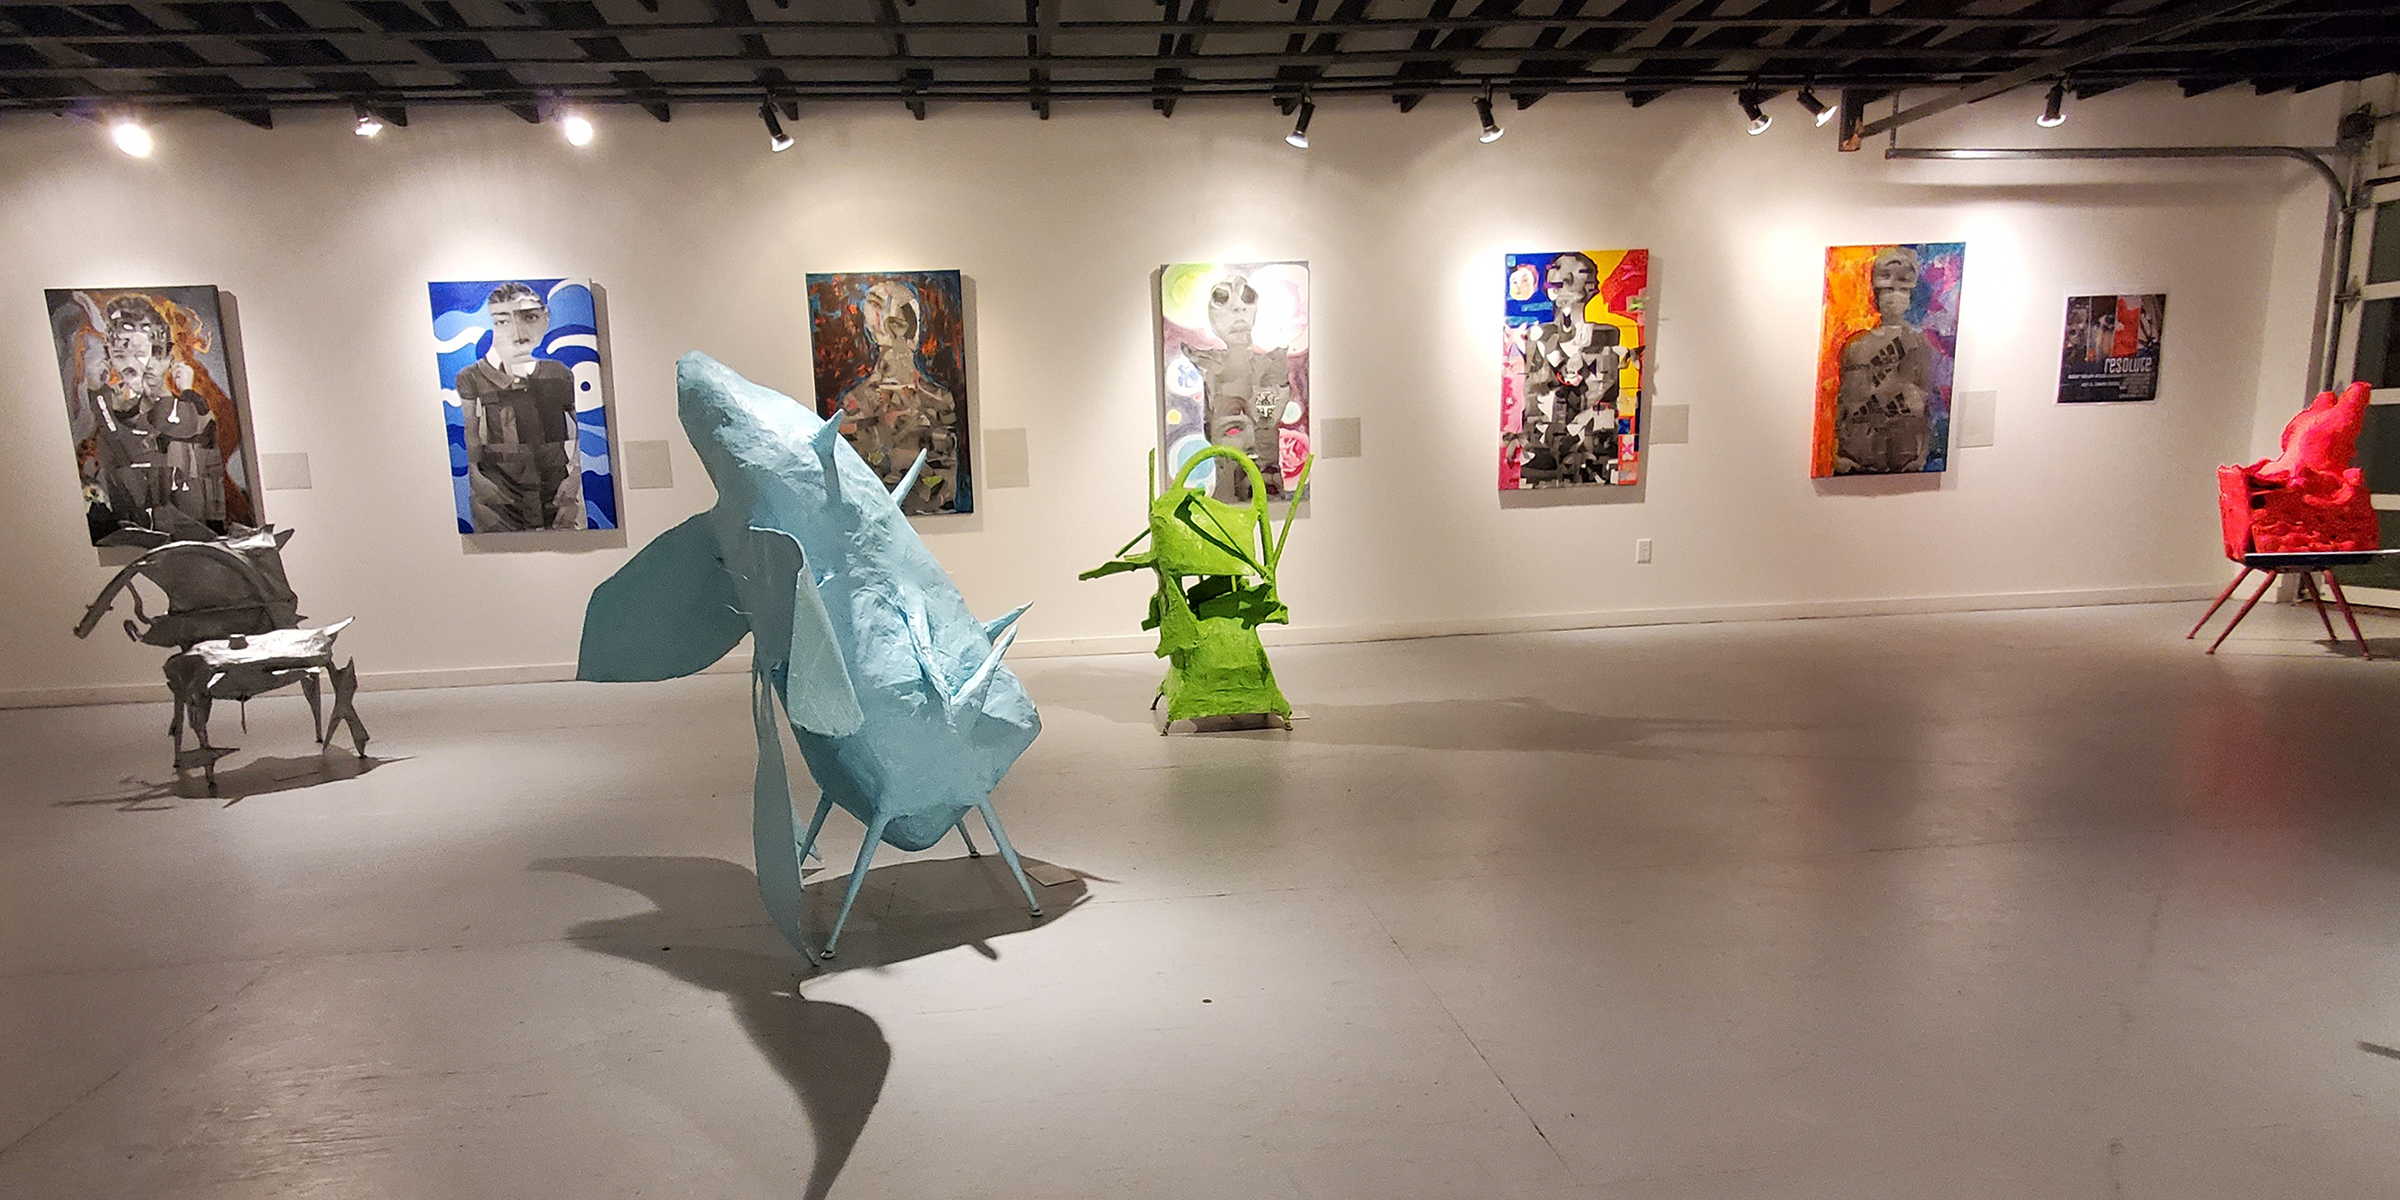 Disrupted — an art exhibit by the Water Valley Artist Society